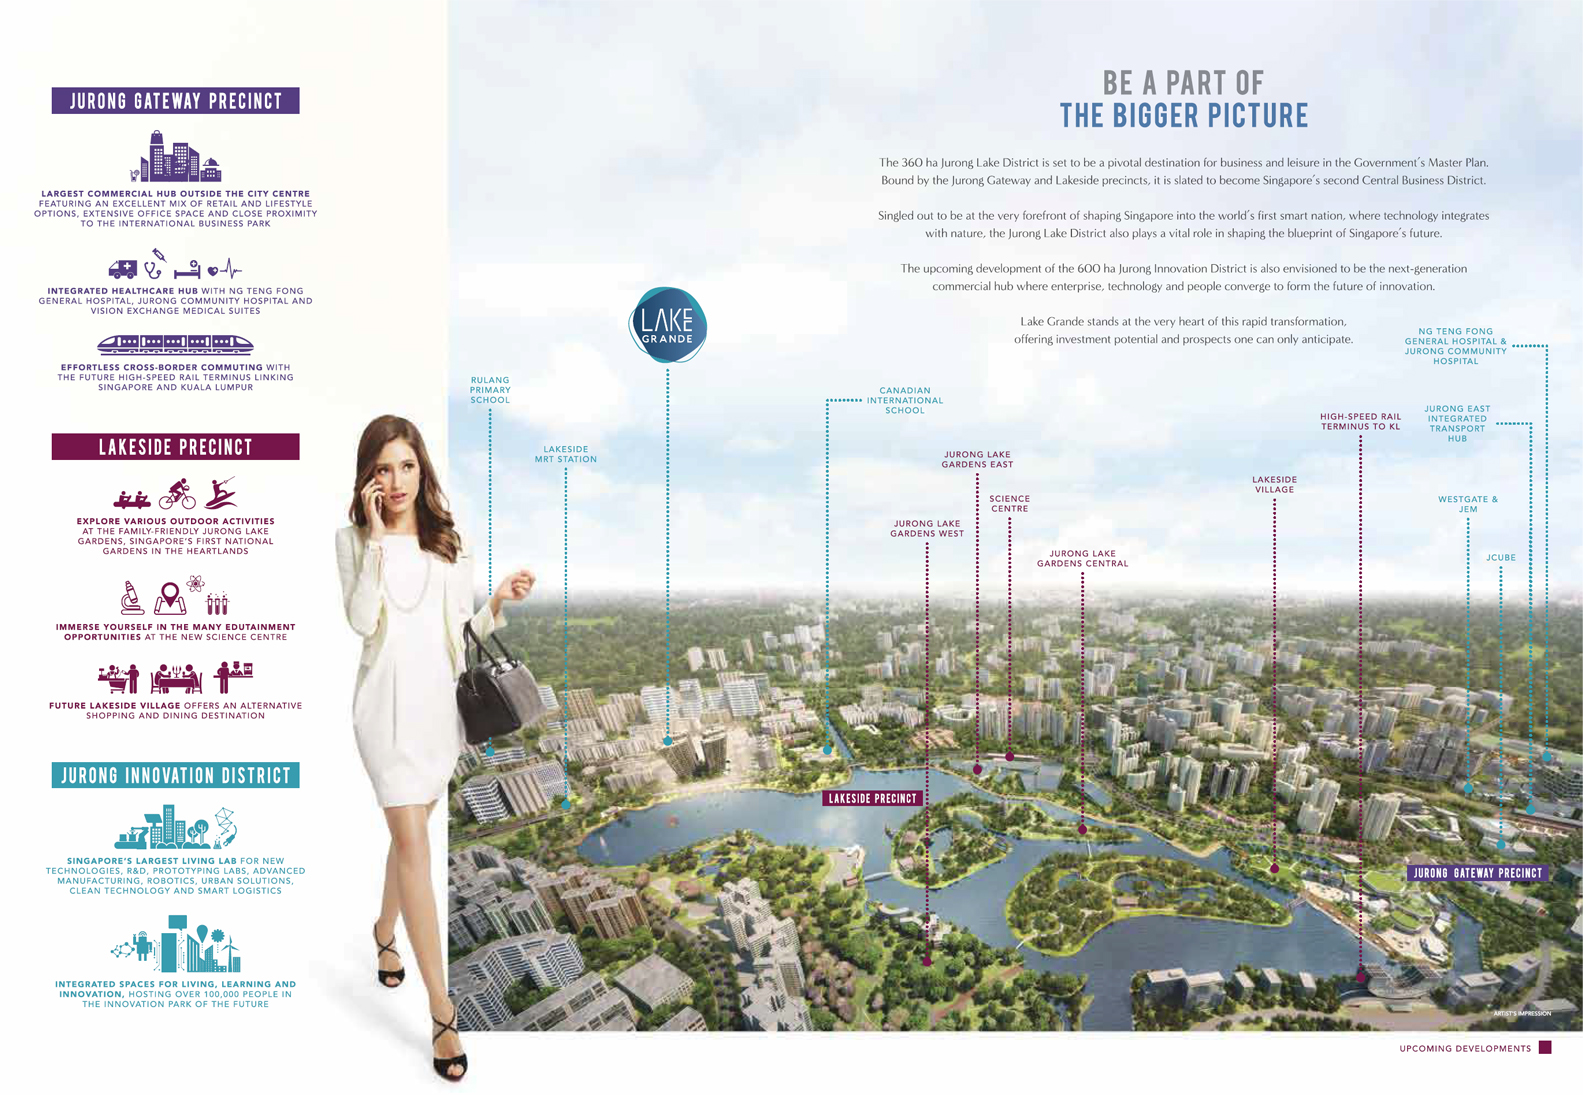 Jurong Upcoming Development